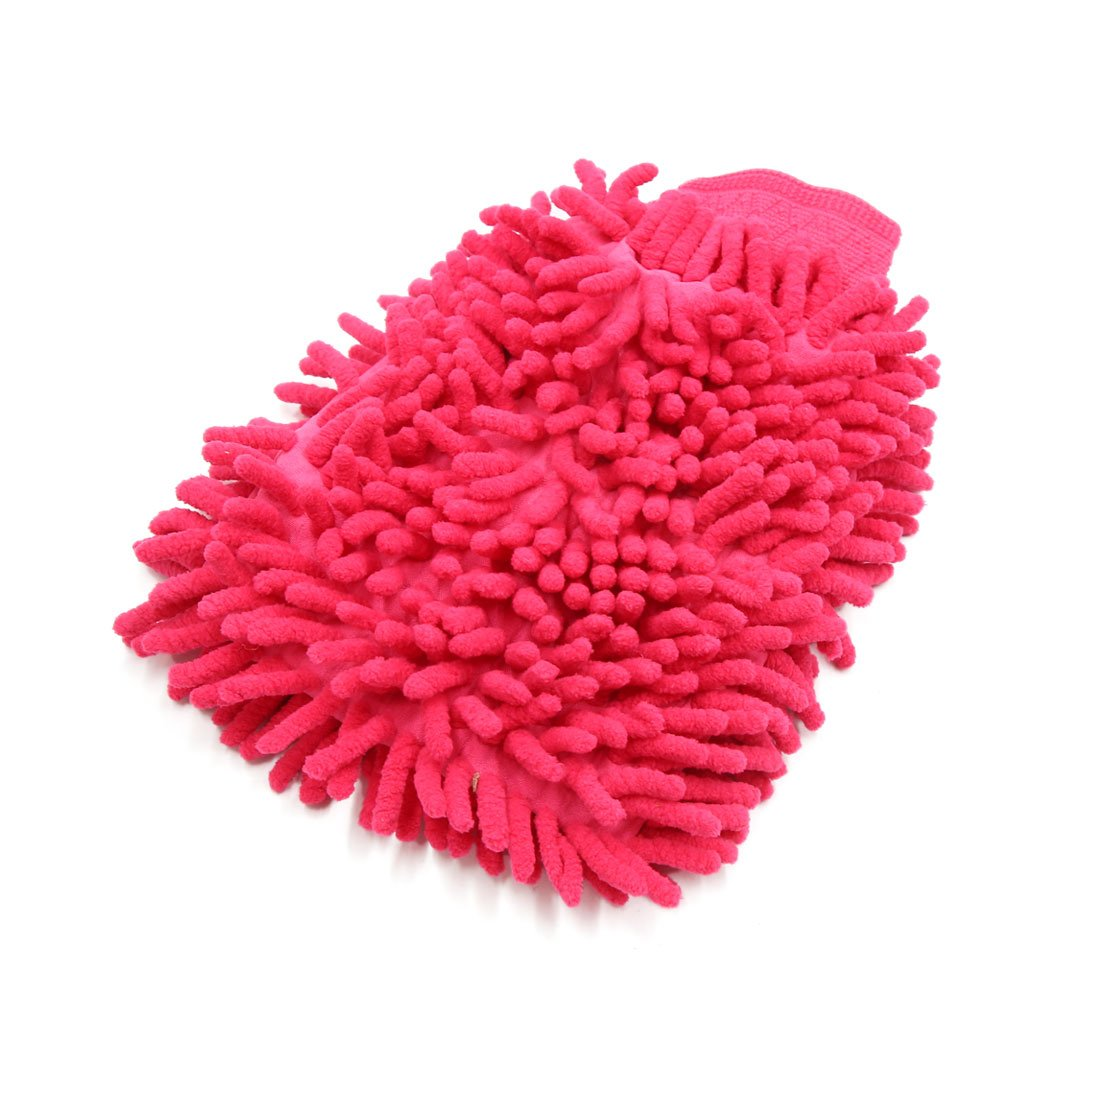 Sourcingmap Rose Red Dual Sided Microfiber Chenille Mitt Car Home Washing Cleaning Glove a18020700ux0011